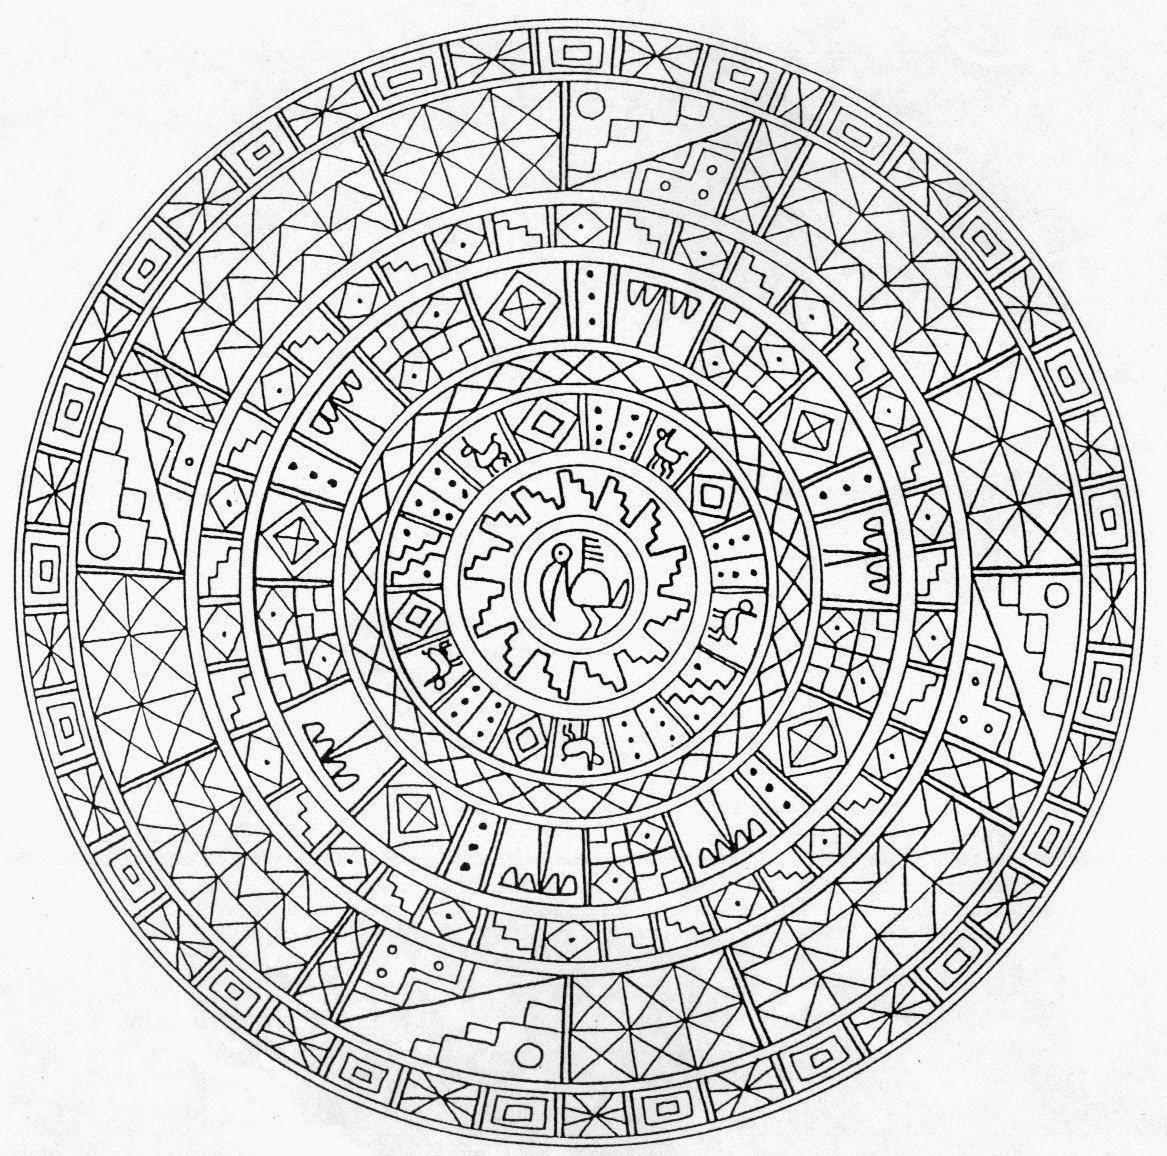 mandalas to color free mandala coloring sheets coloringnori coloring pages free to color mandalas